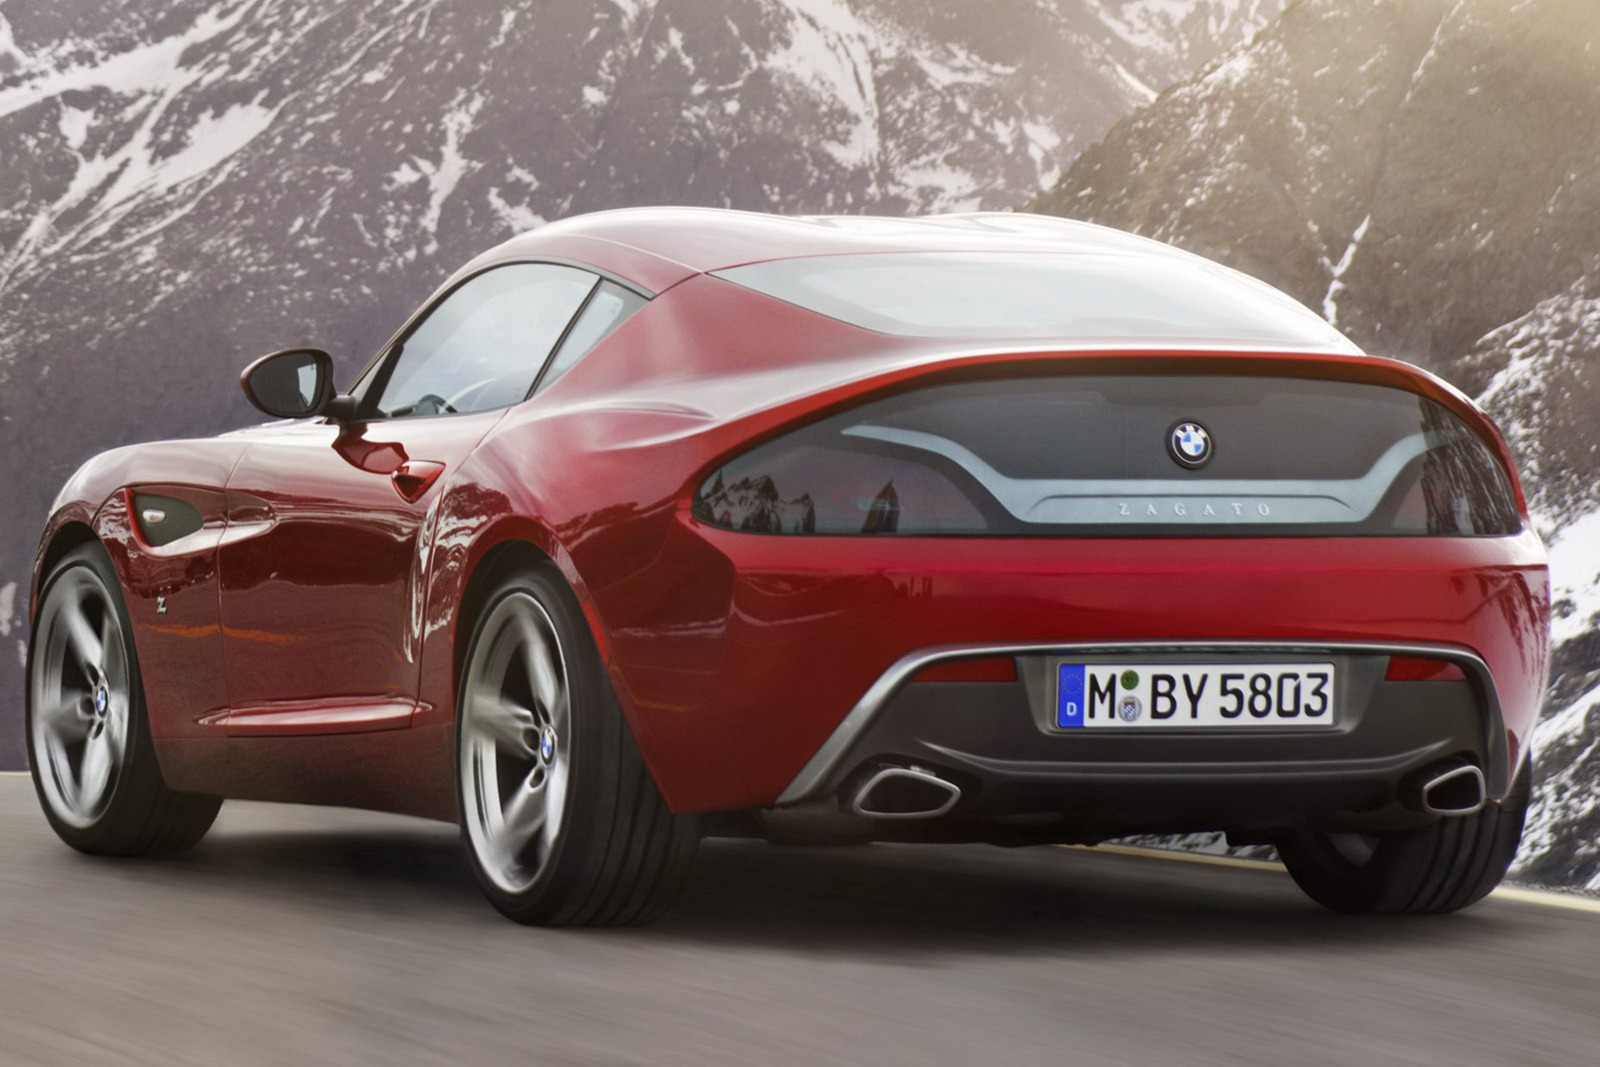 BMW Z4 Zagato Coupe Pictures and Details - AutoTribute